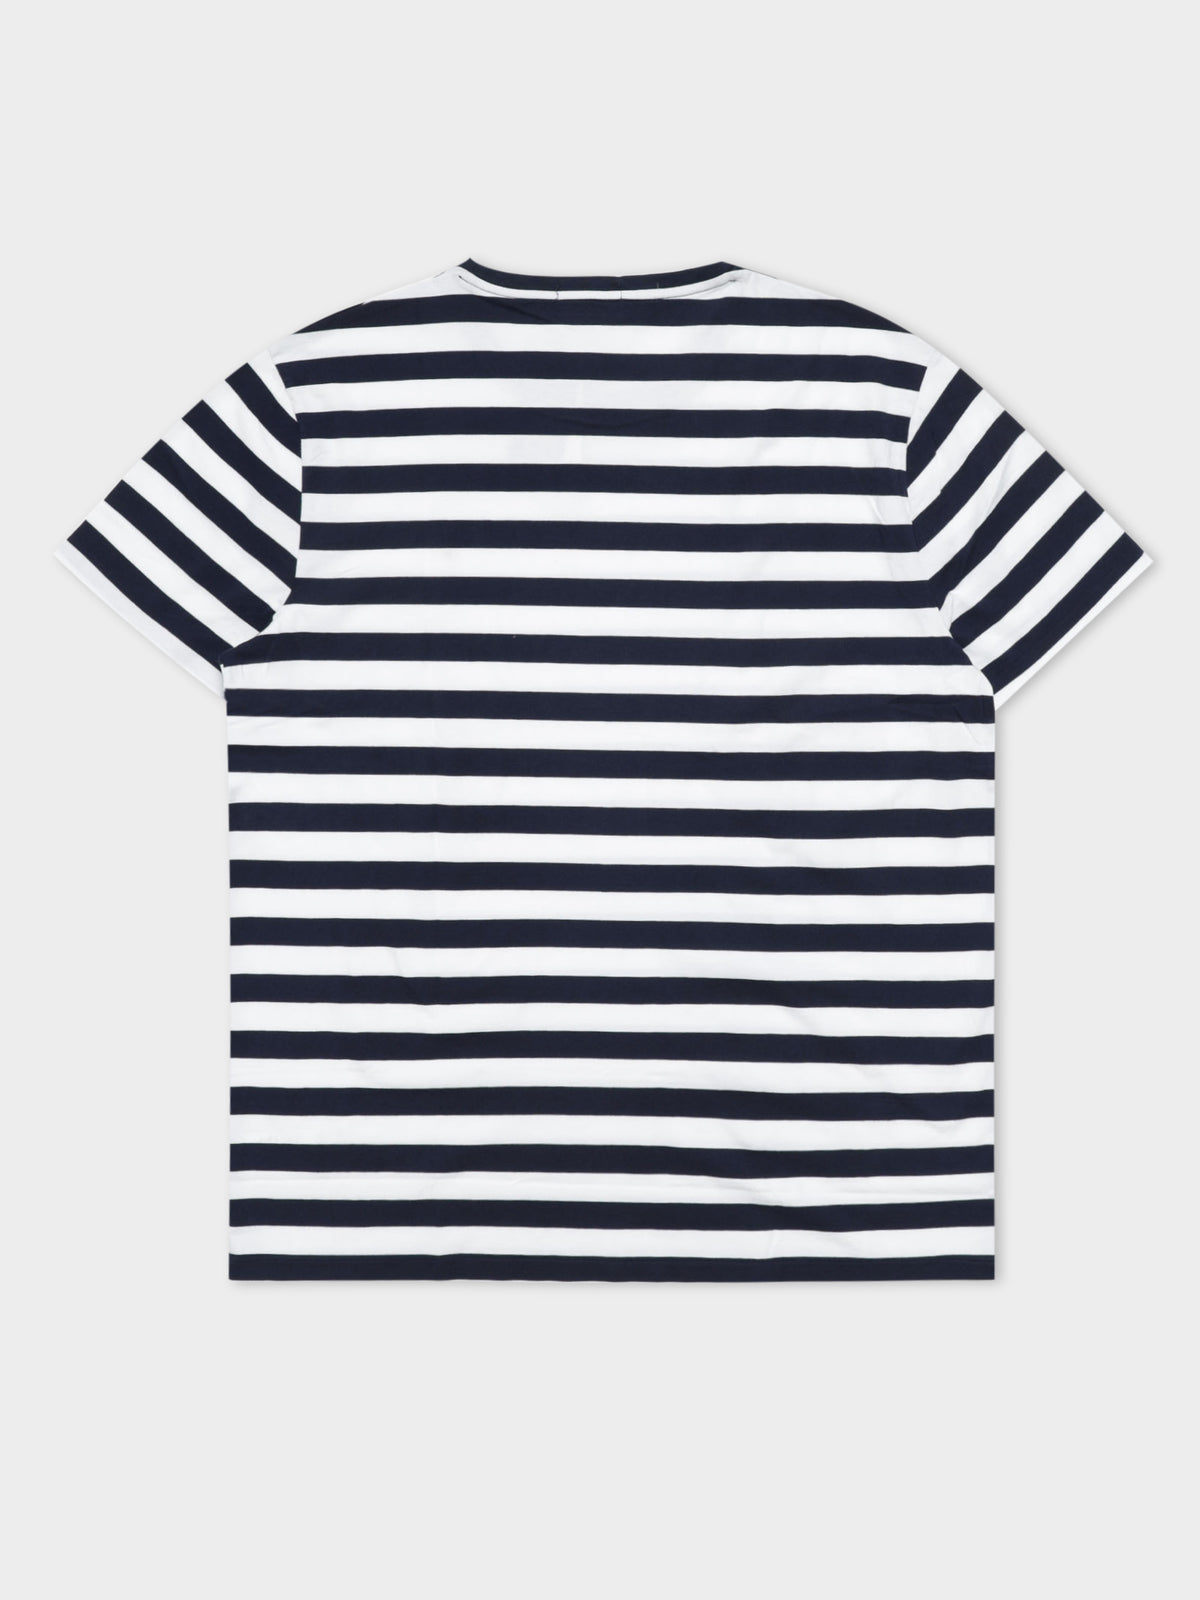 Stripe Short Sleeve T-Shirt in Navy & White